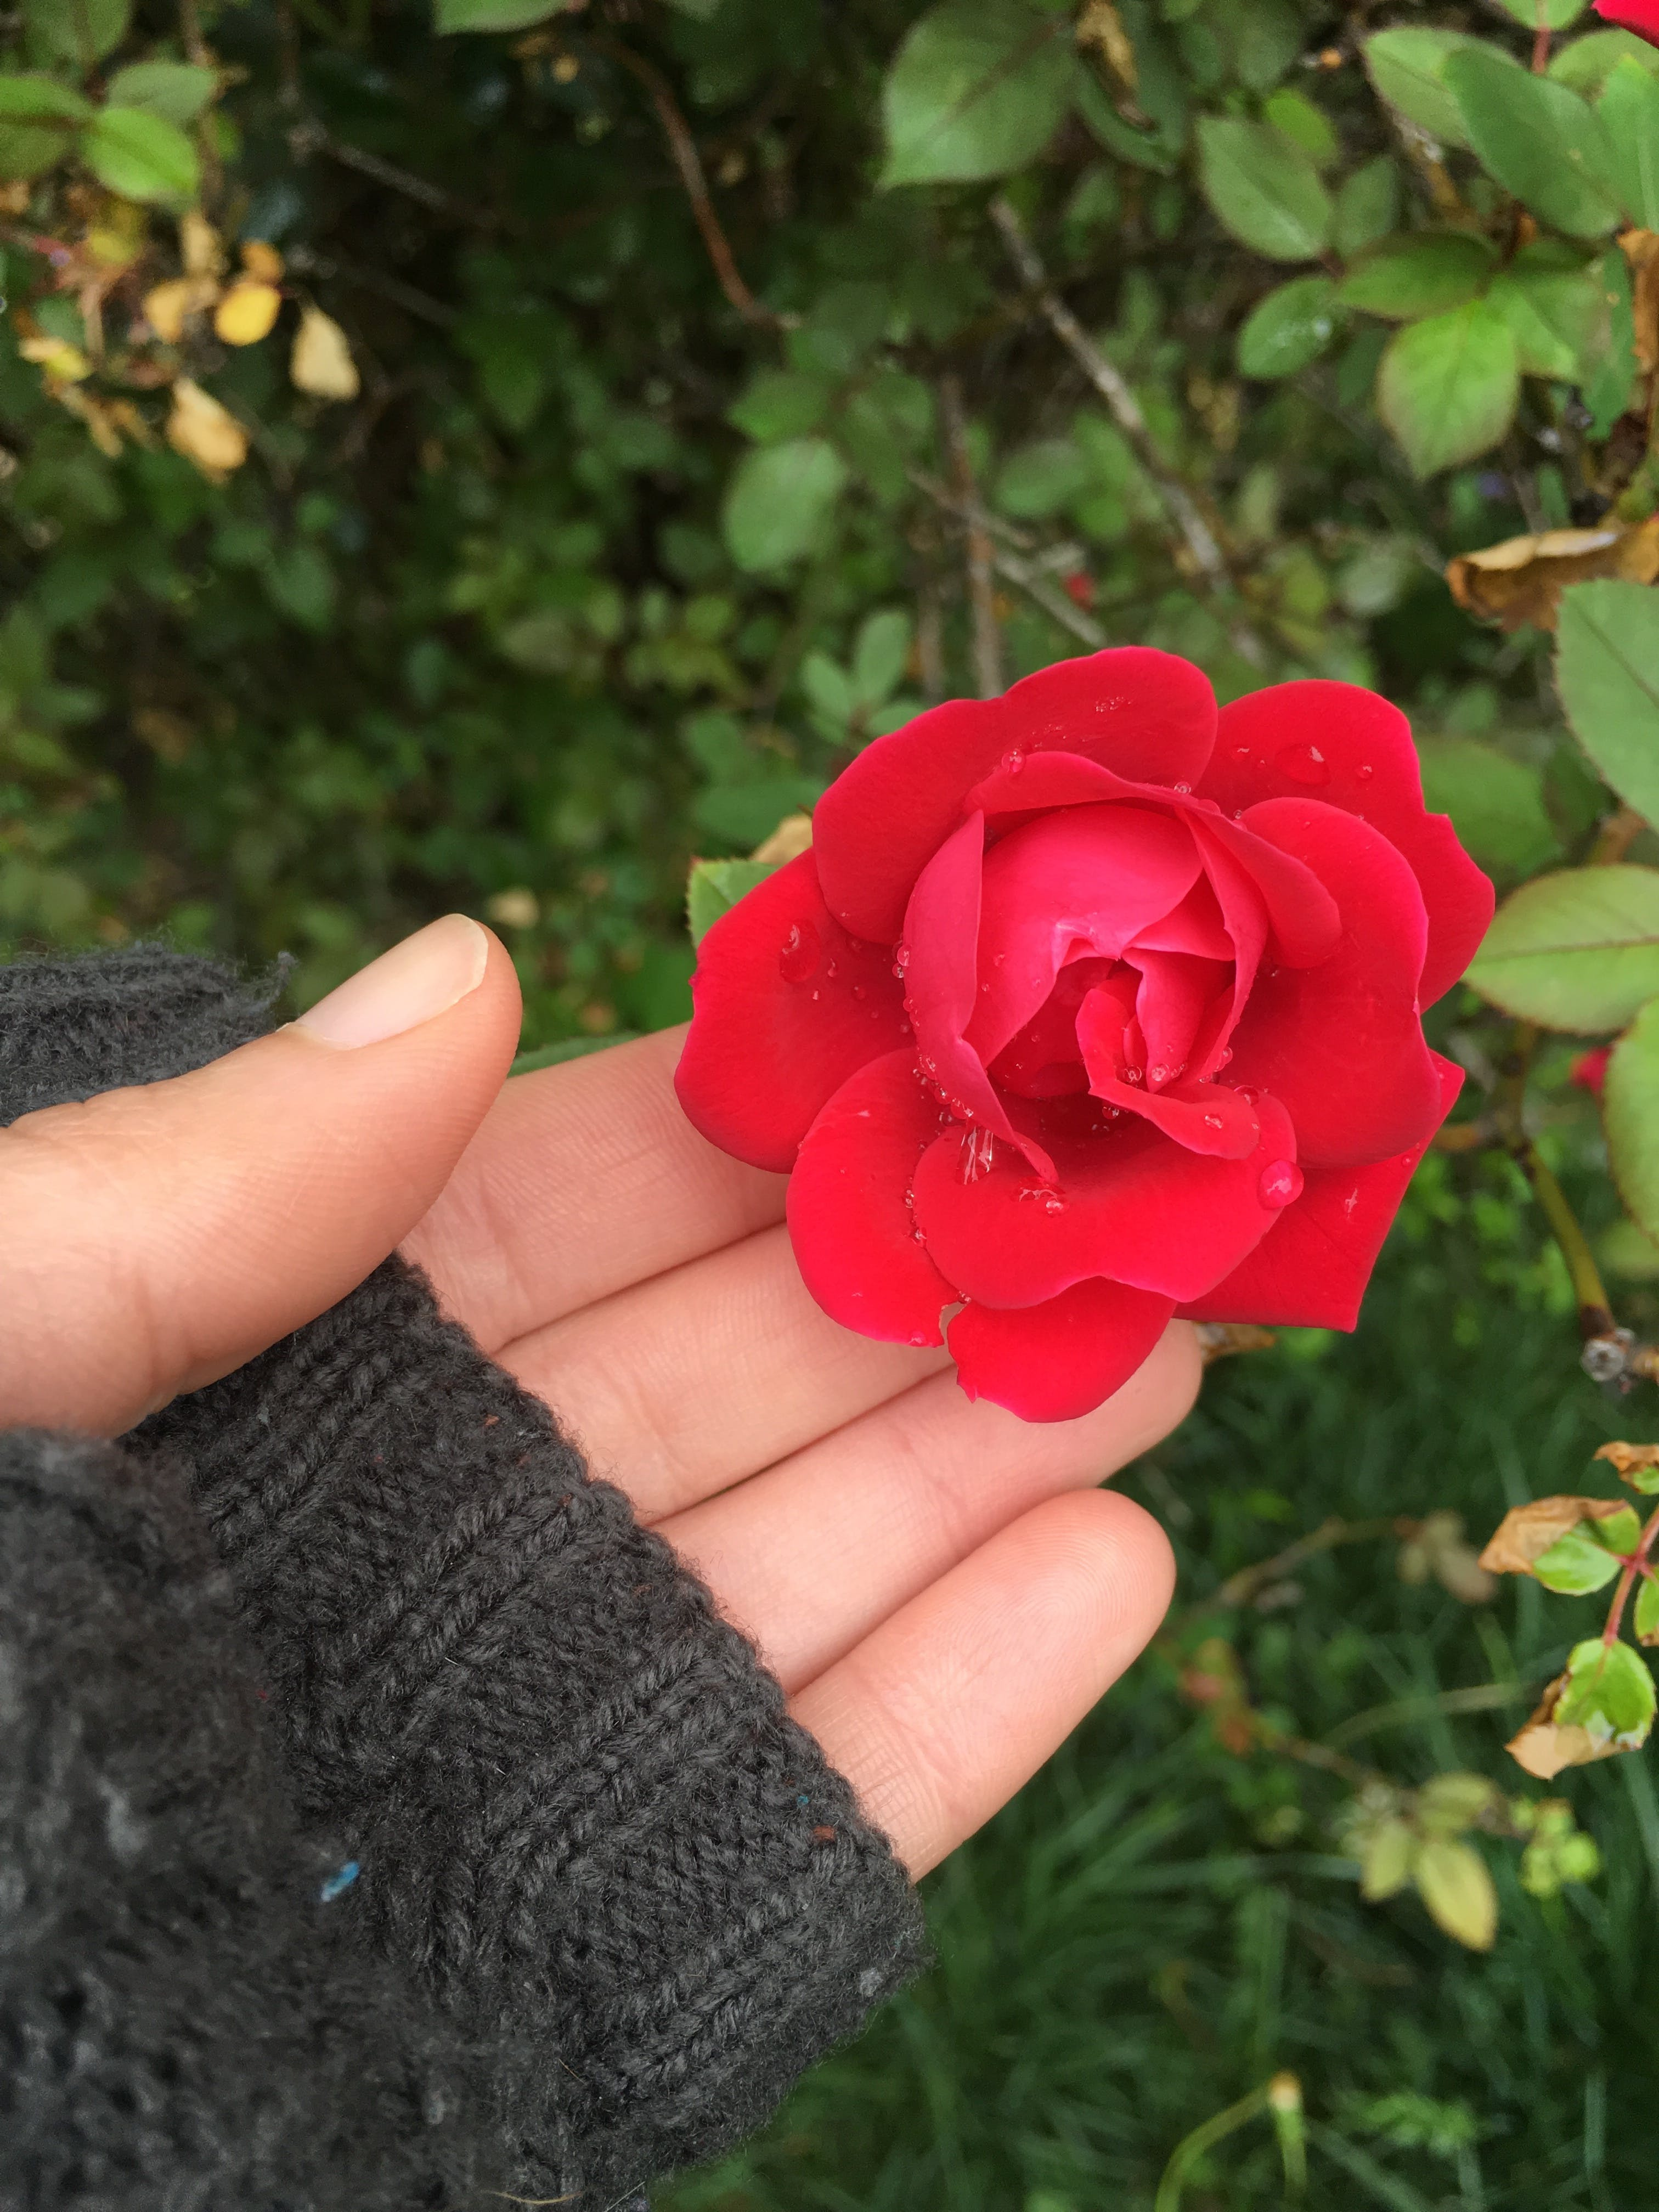 Free stock photo of hand, flower, Red Rose